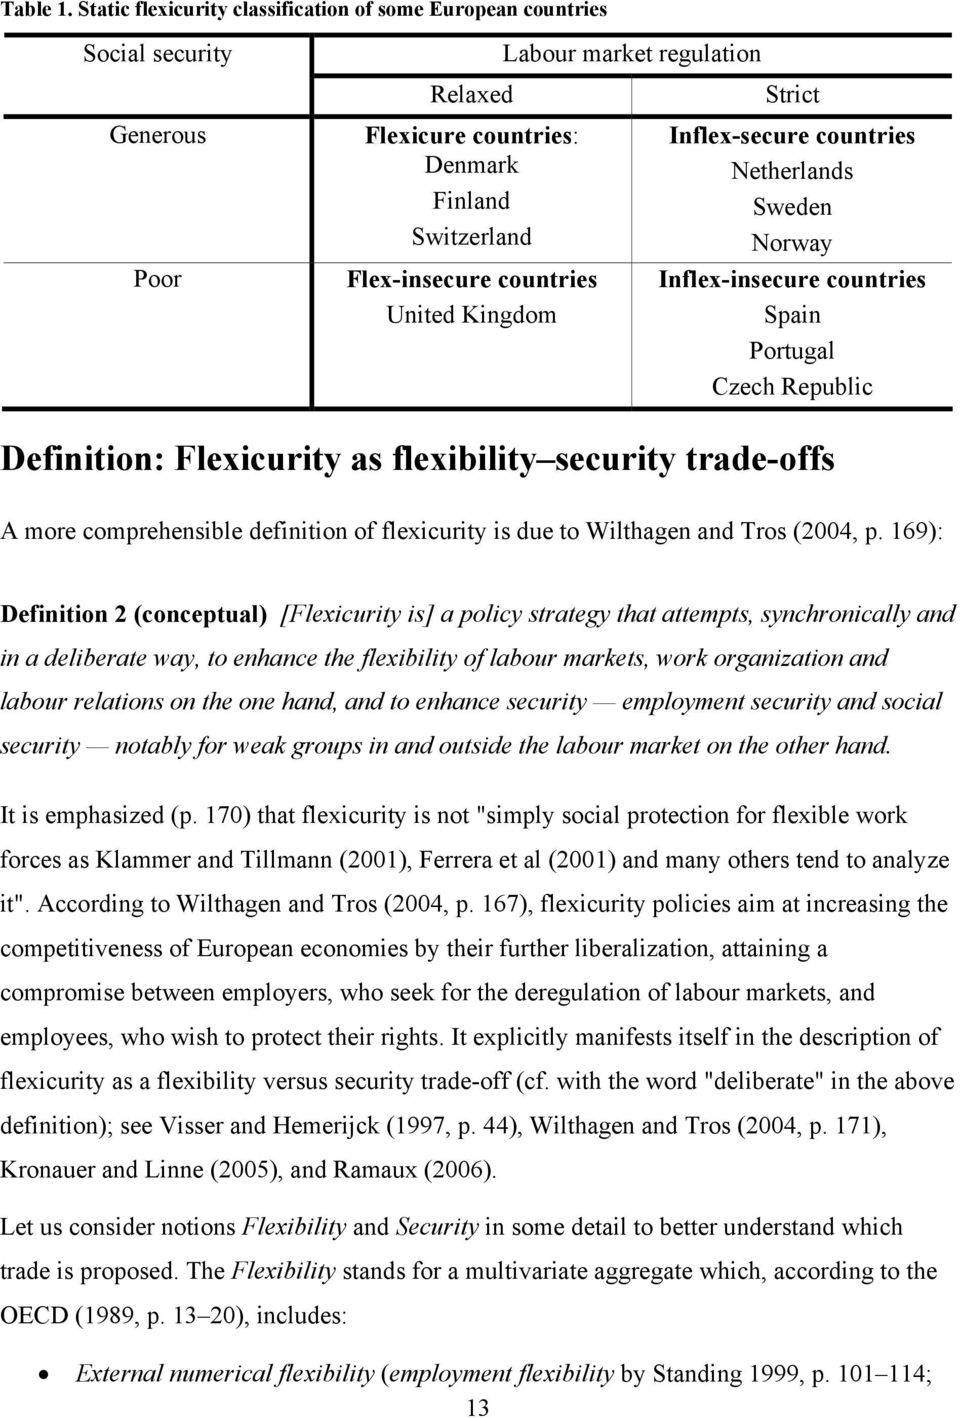 market regulation Strict Inflex-secure countries Netherlands Sweden Norway Inflex-insecure countries Spain Portugal Czech Republic Definition: Flexicurity as flexibility security trade-offs A more